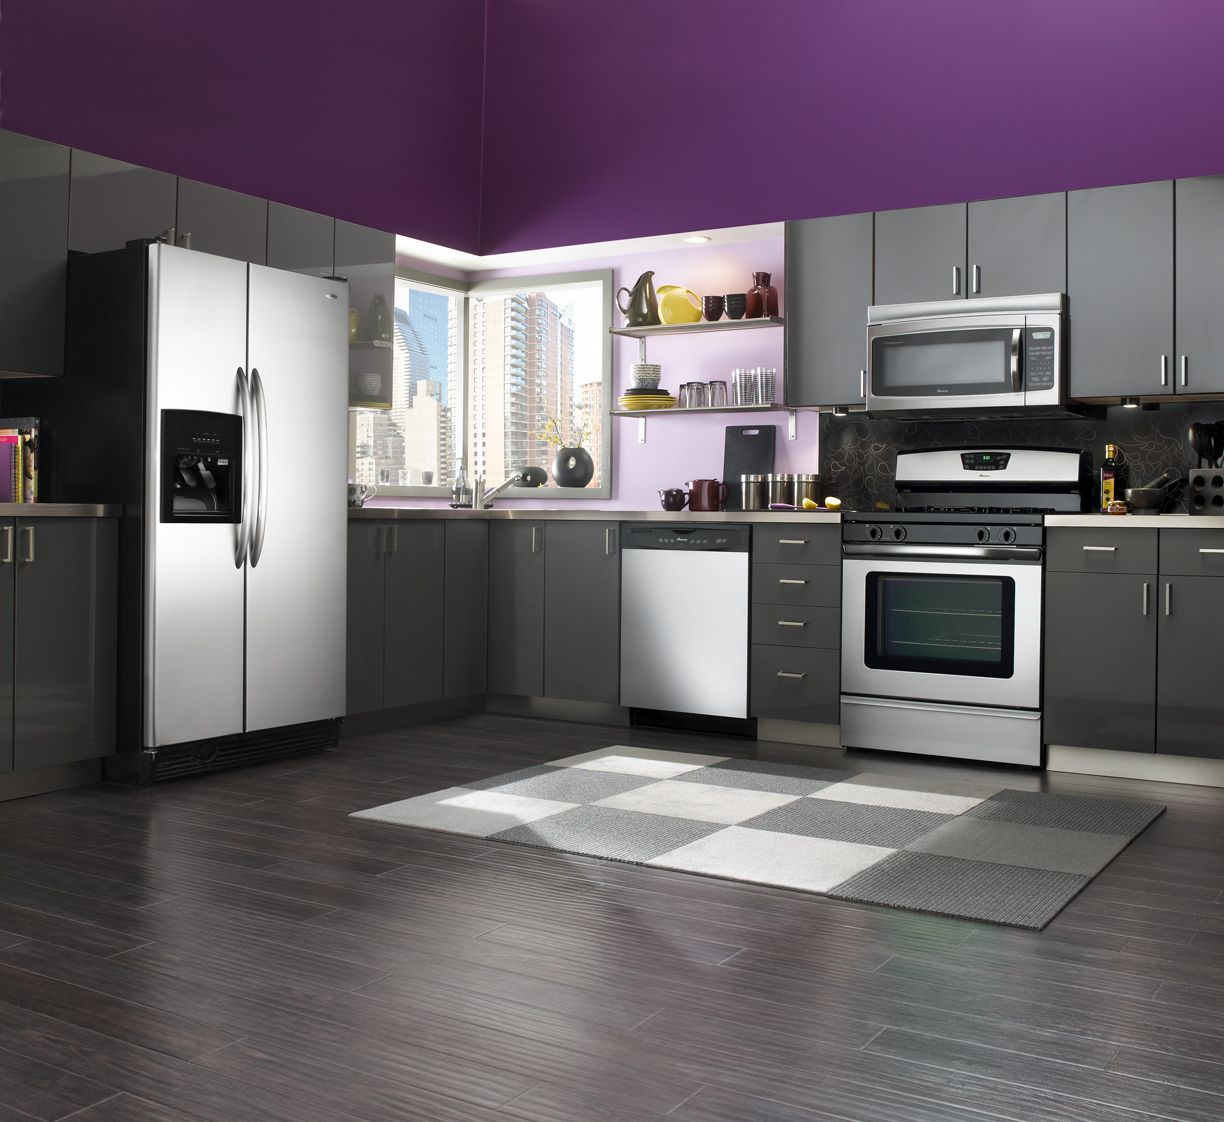 Beautiful Kitchen Designs In Purple Color : Enticing Purple Kitchen Design  With Gray Kitchen Cabinet And